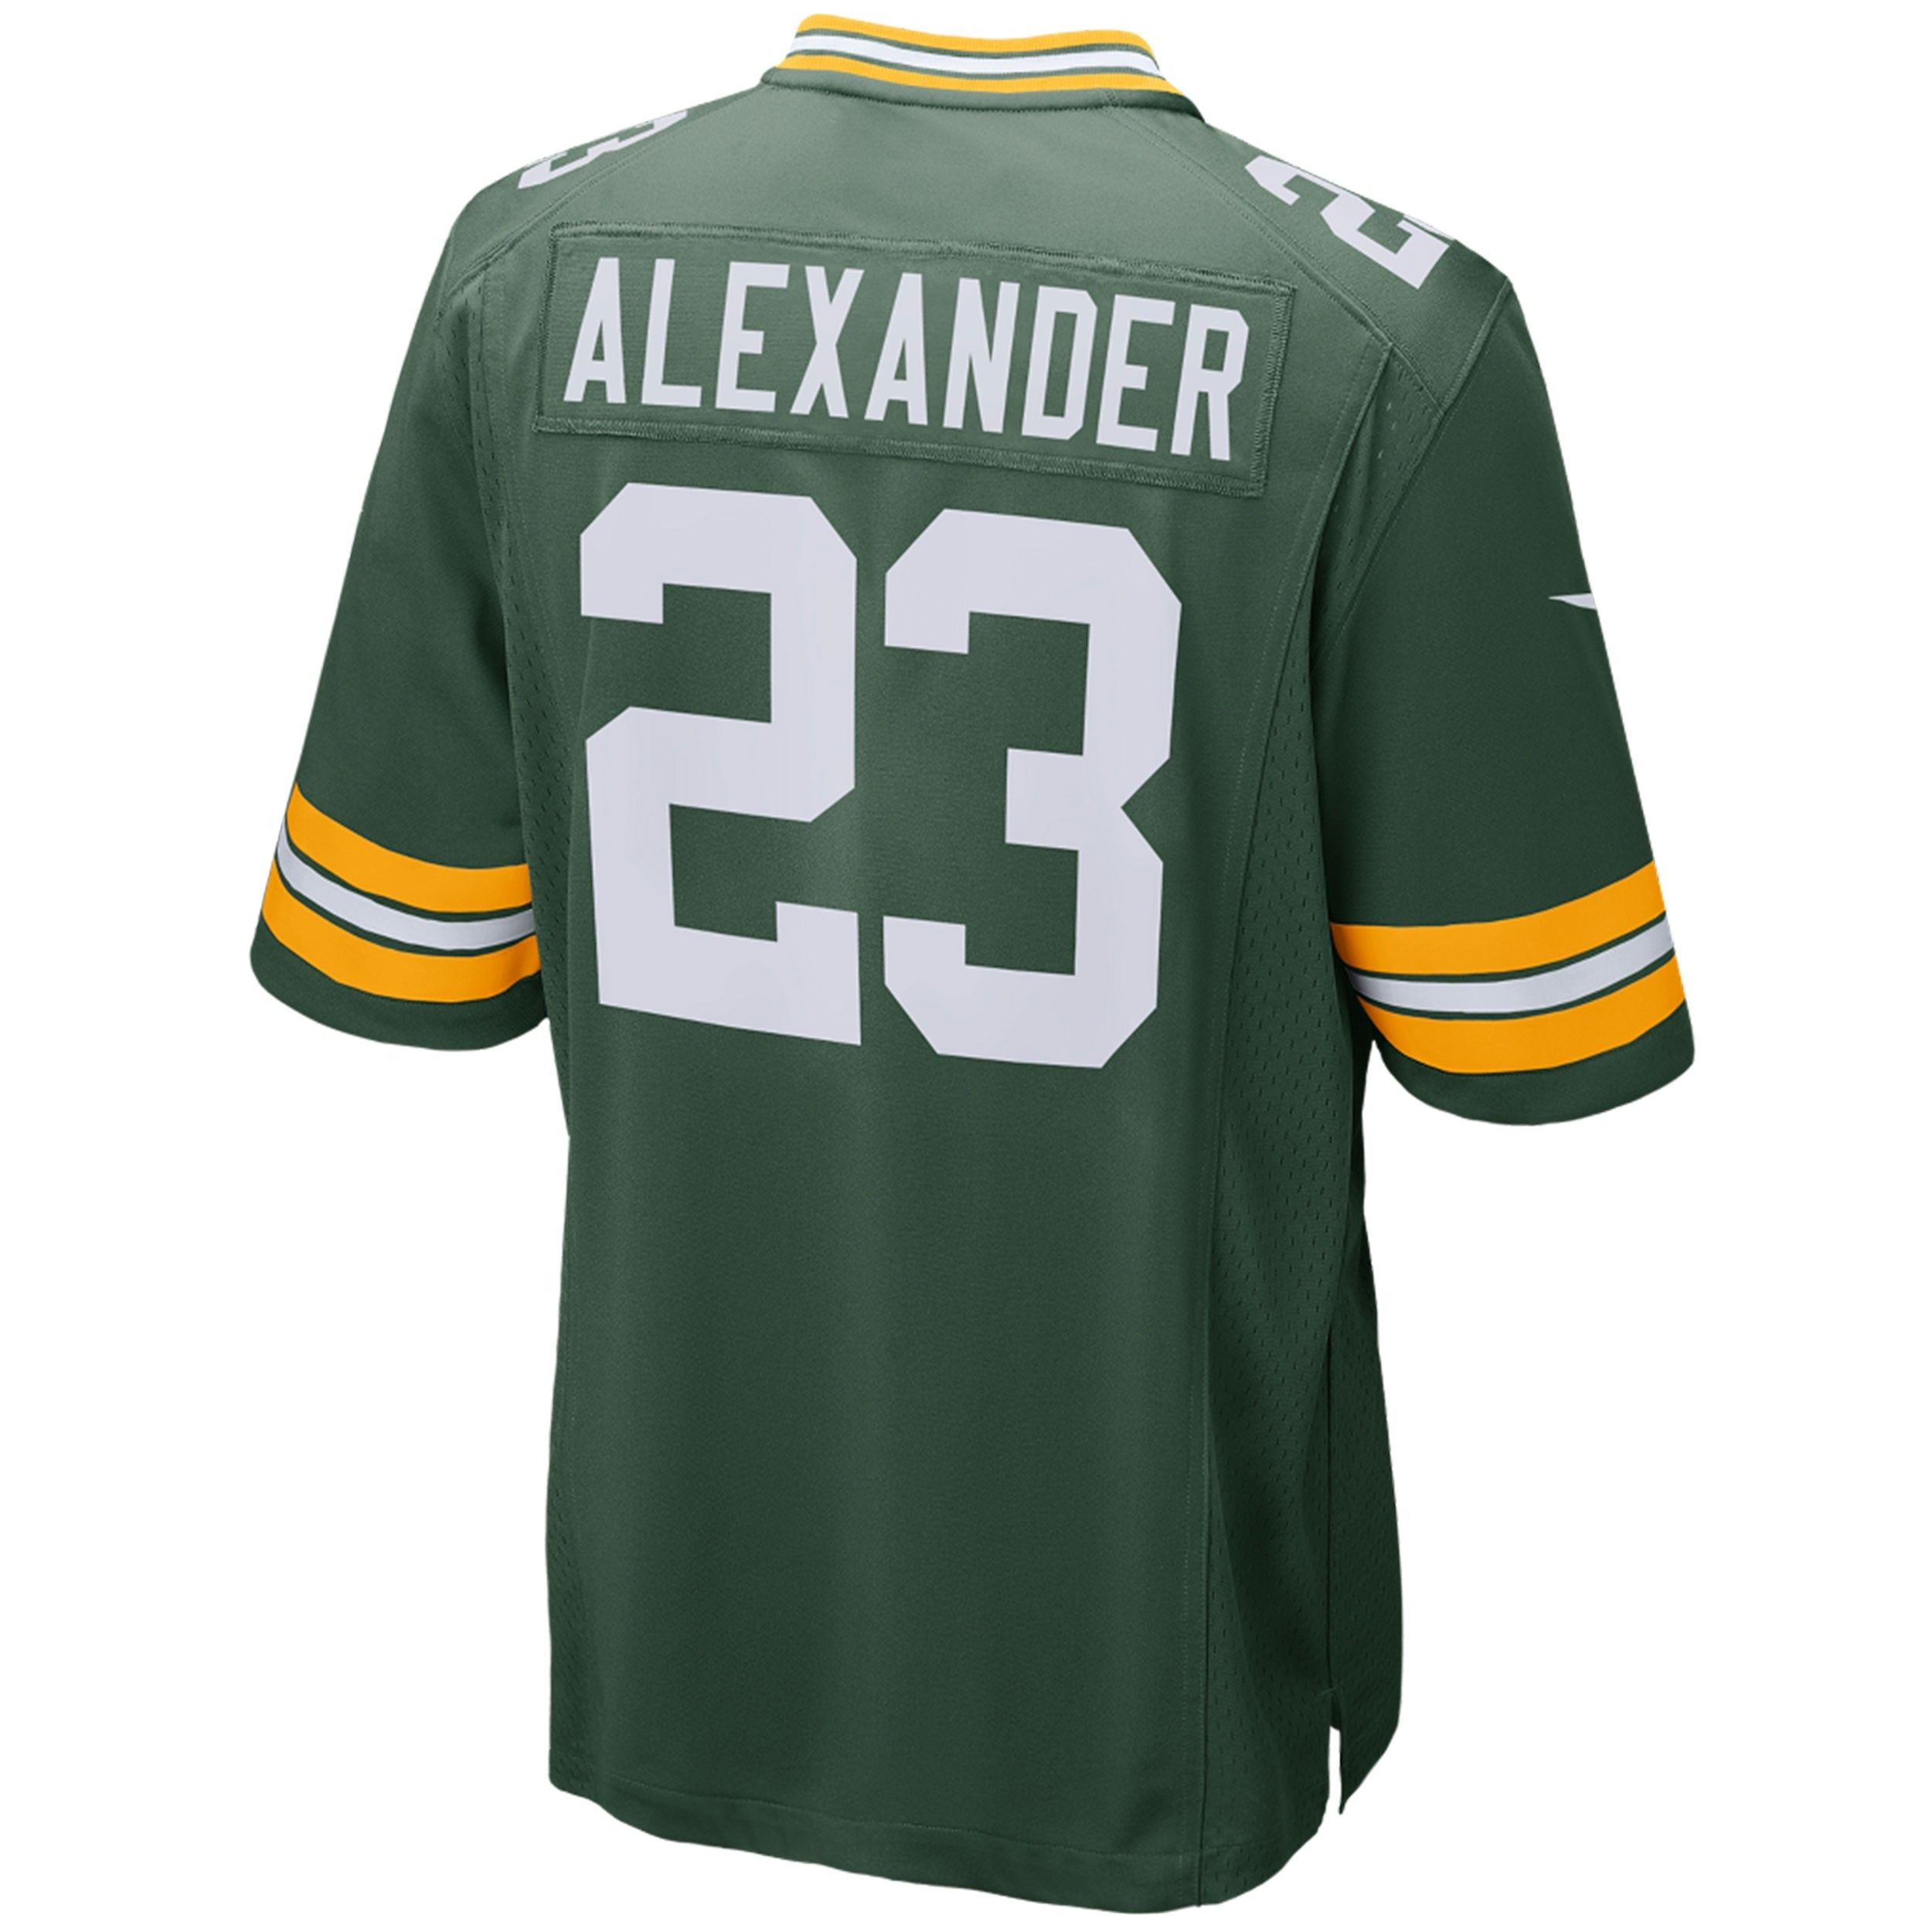 23 Jaire Alexander Home Youth Game Jersey Green Bay Packers Green Bay Packers Game Green Bay Packers Jerseys